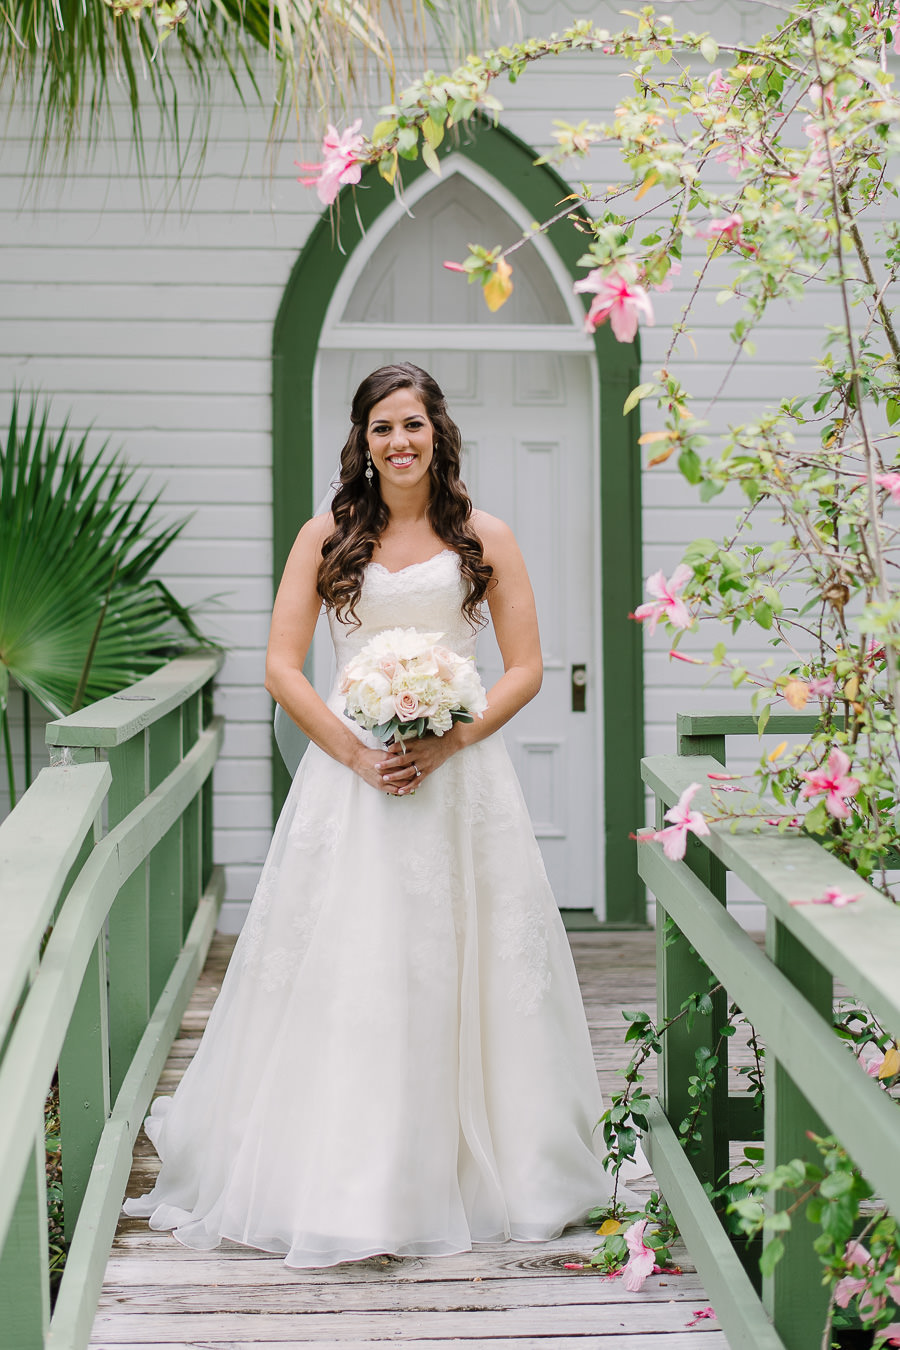 Bridal Portrait Wearing Watters Sweetheart Dress with White Floral Bouquet | Tampa Bay Wedding Ceremony Venue Church Andrews Memorial Chapel